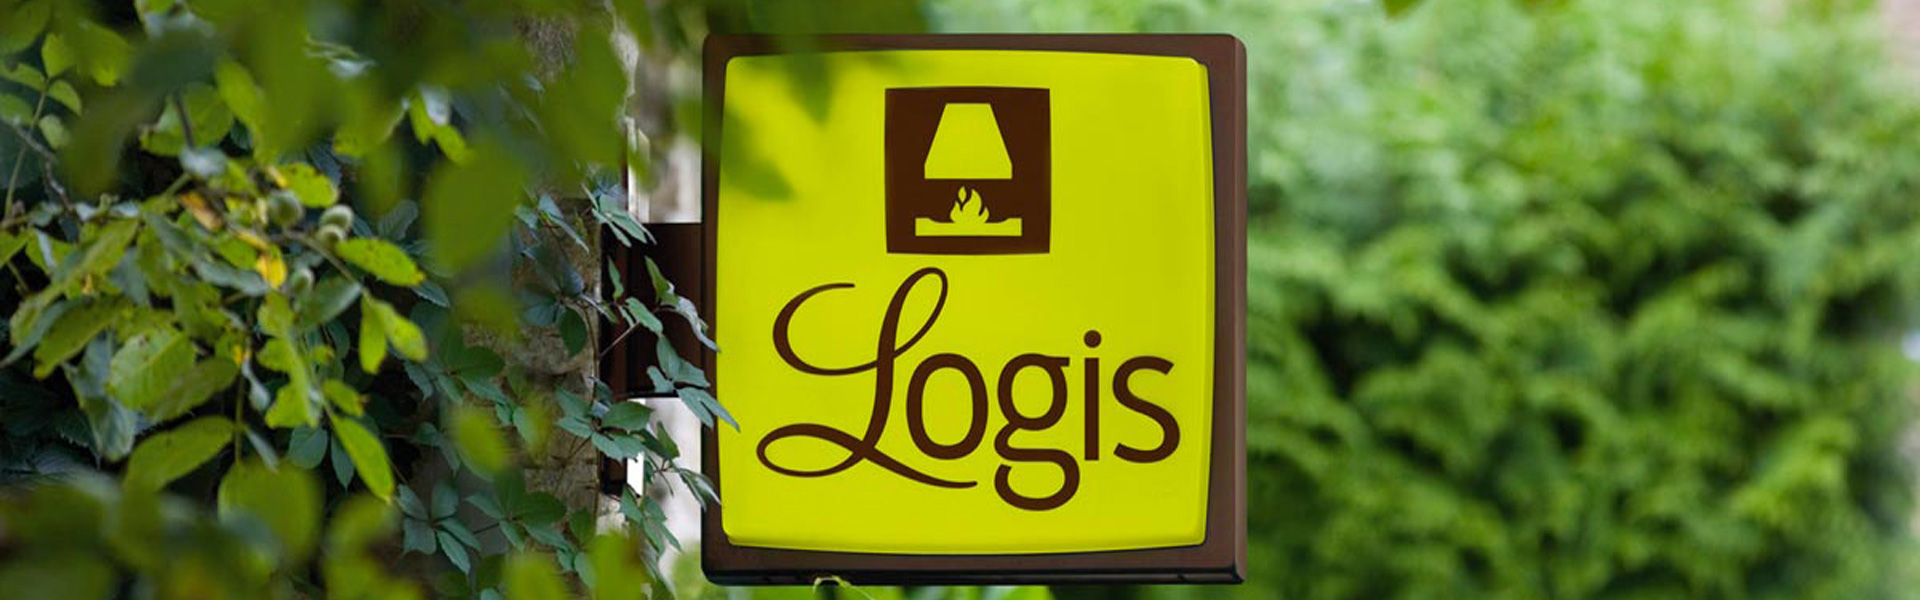 Logis Hotel Dimmer